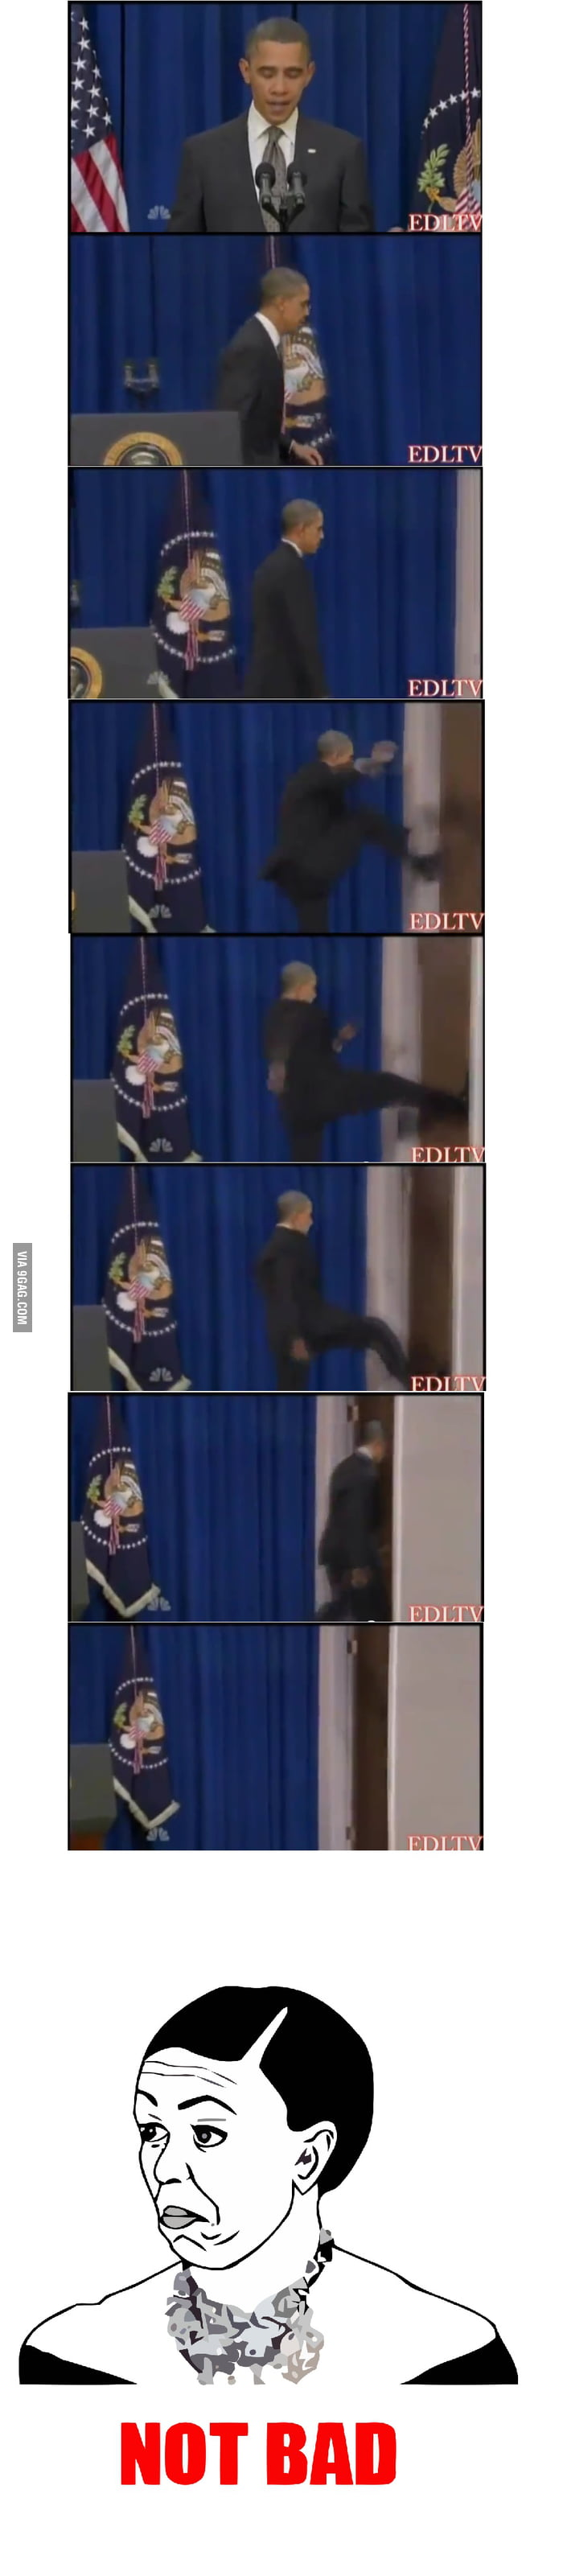 Just Obama being awesome...